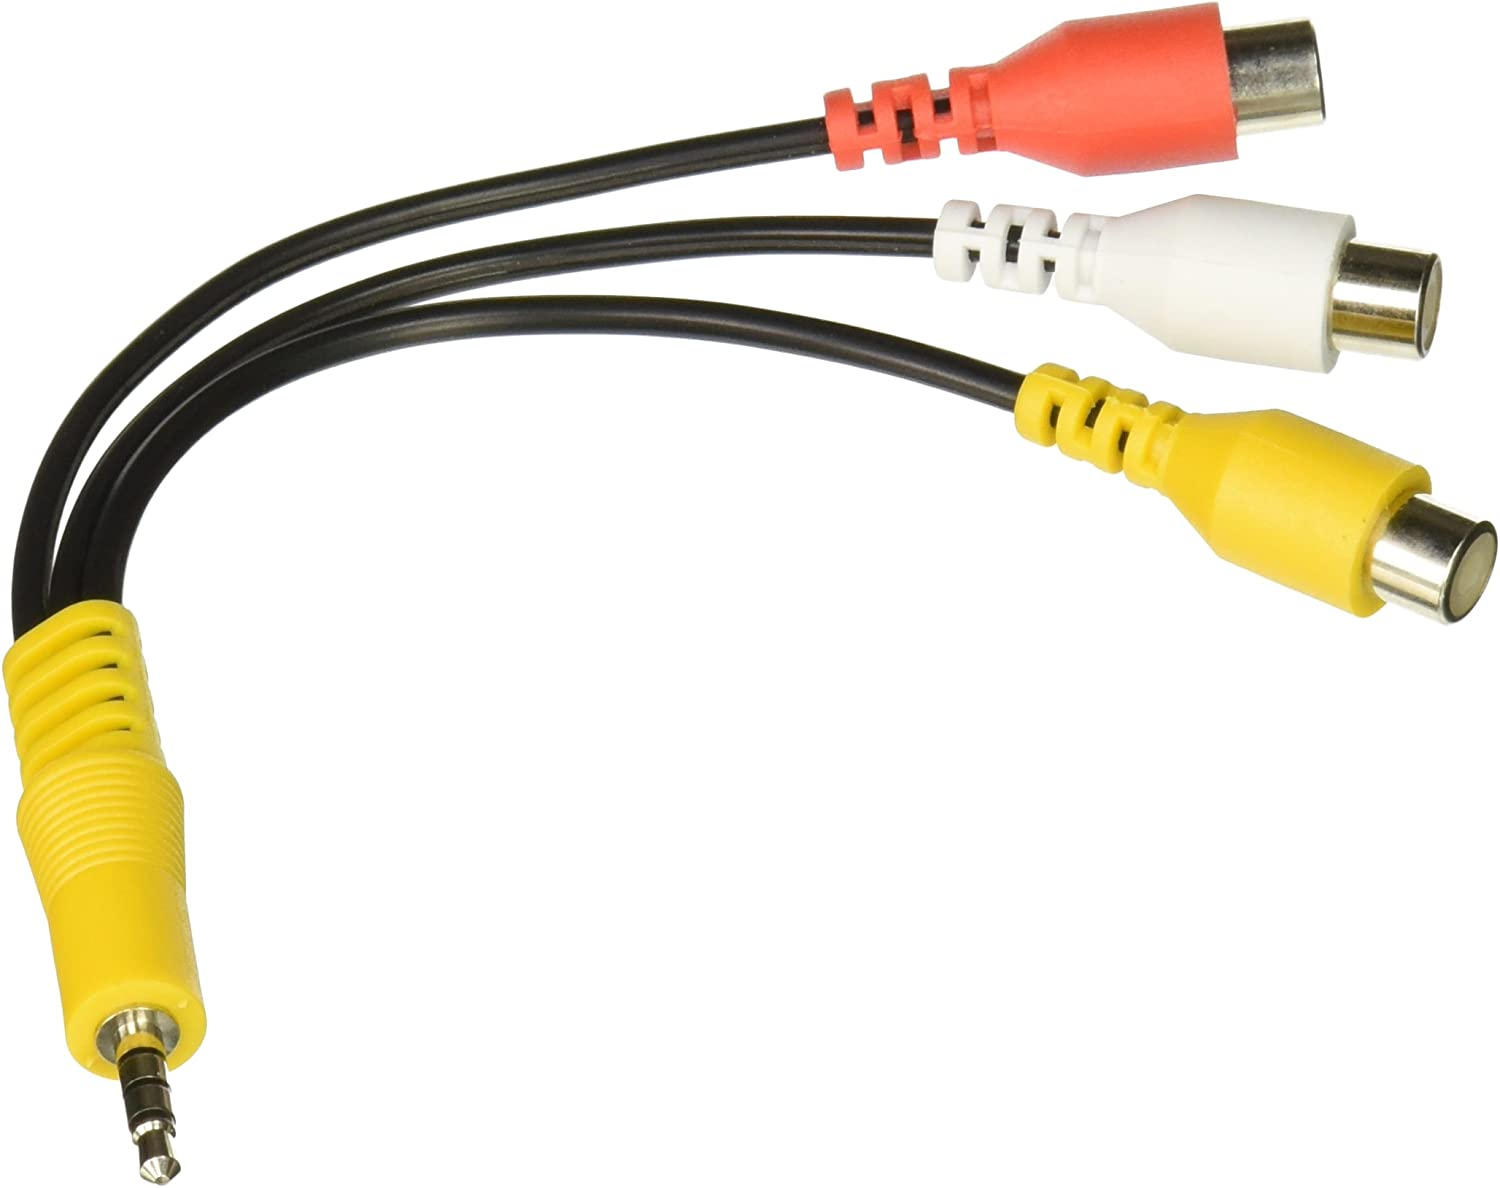 highfine Sustitución Adaptador de vídeo AV 3 RCA CBF Cable de señal para Samsung LED TV BN39 – 01154H: Amazon.es: Electrónica